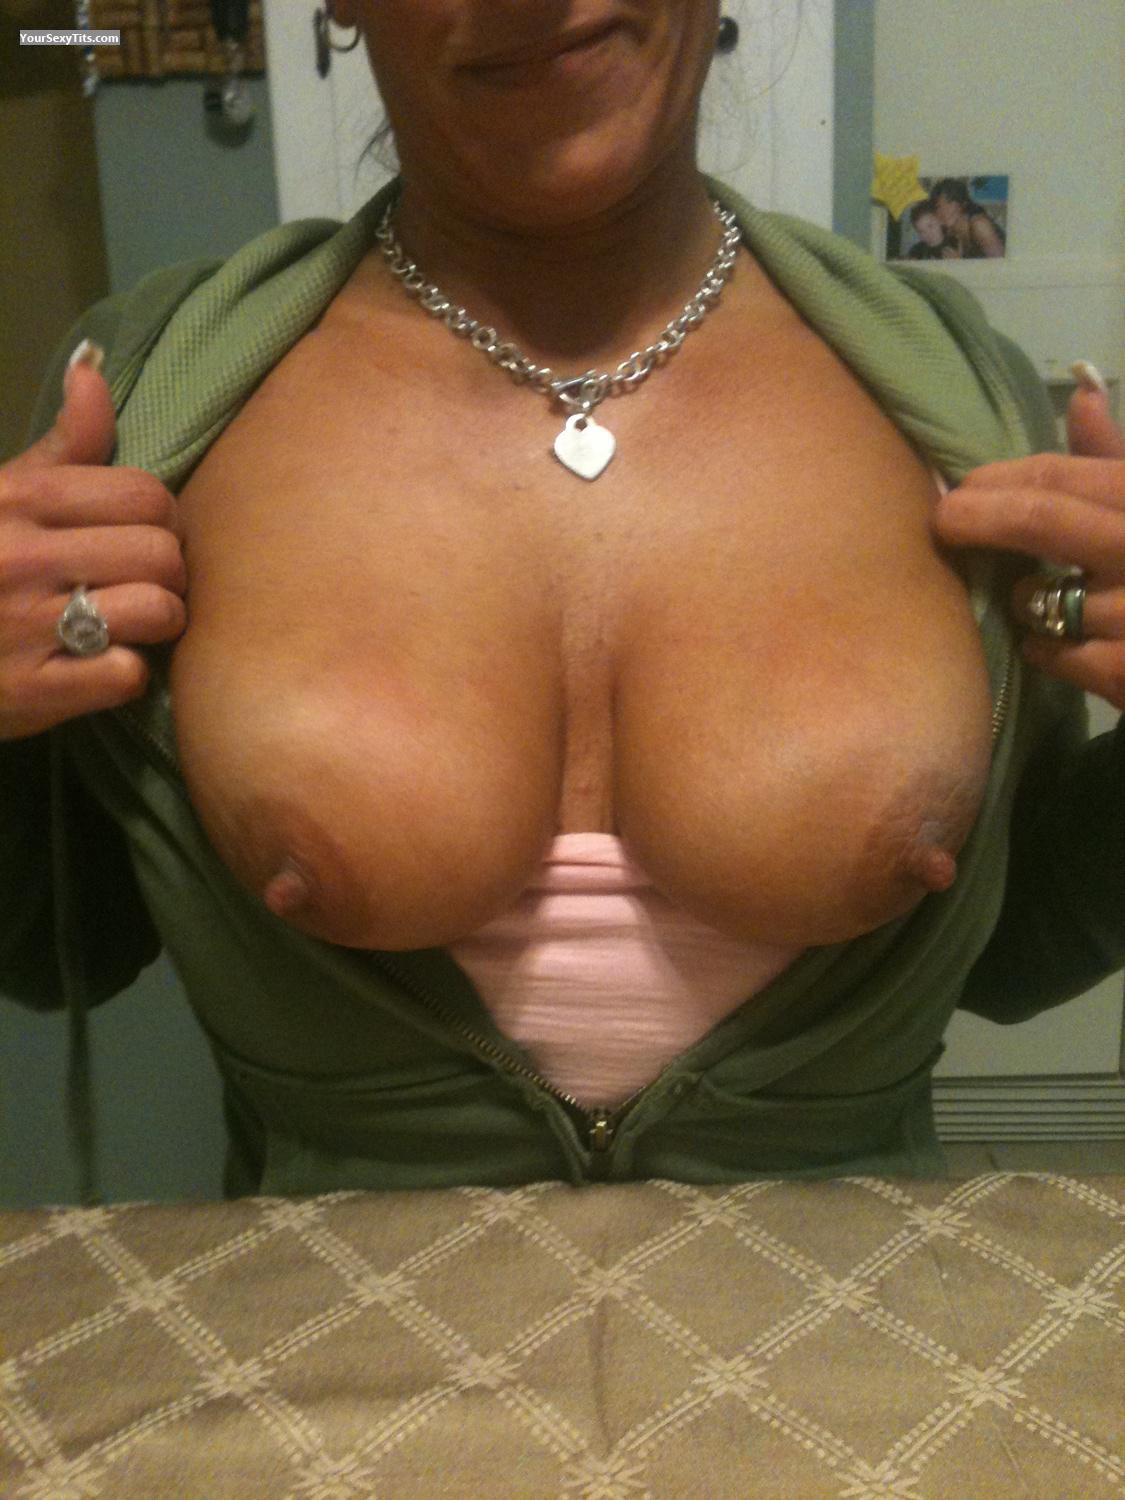 Tit Flash: Very Big Tits By IPhone - T.T. from United States